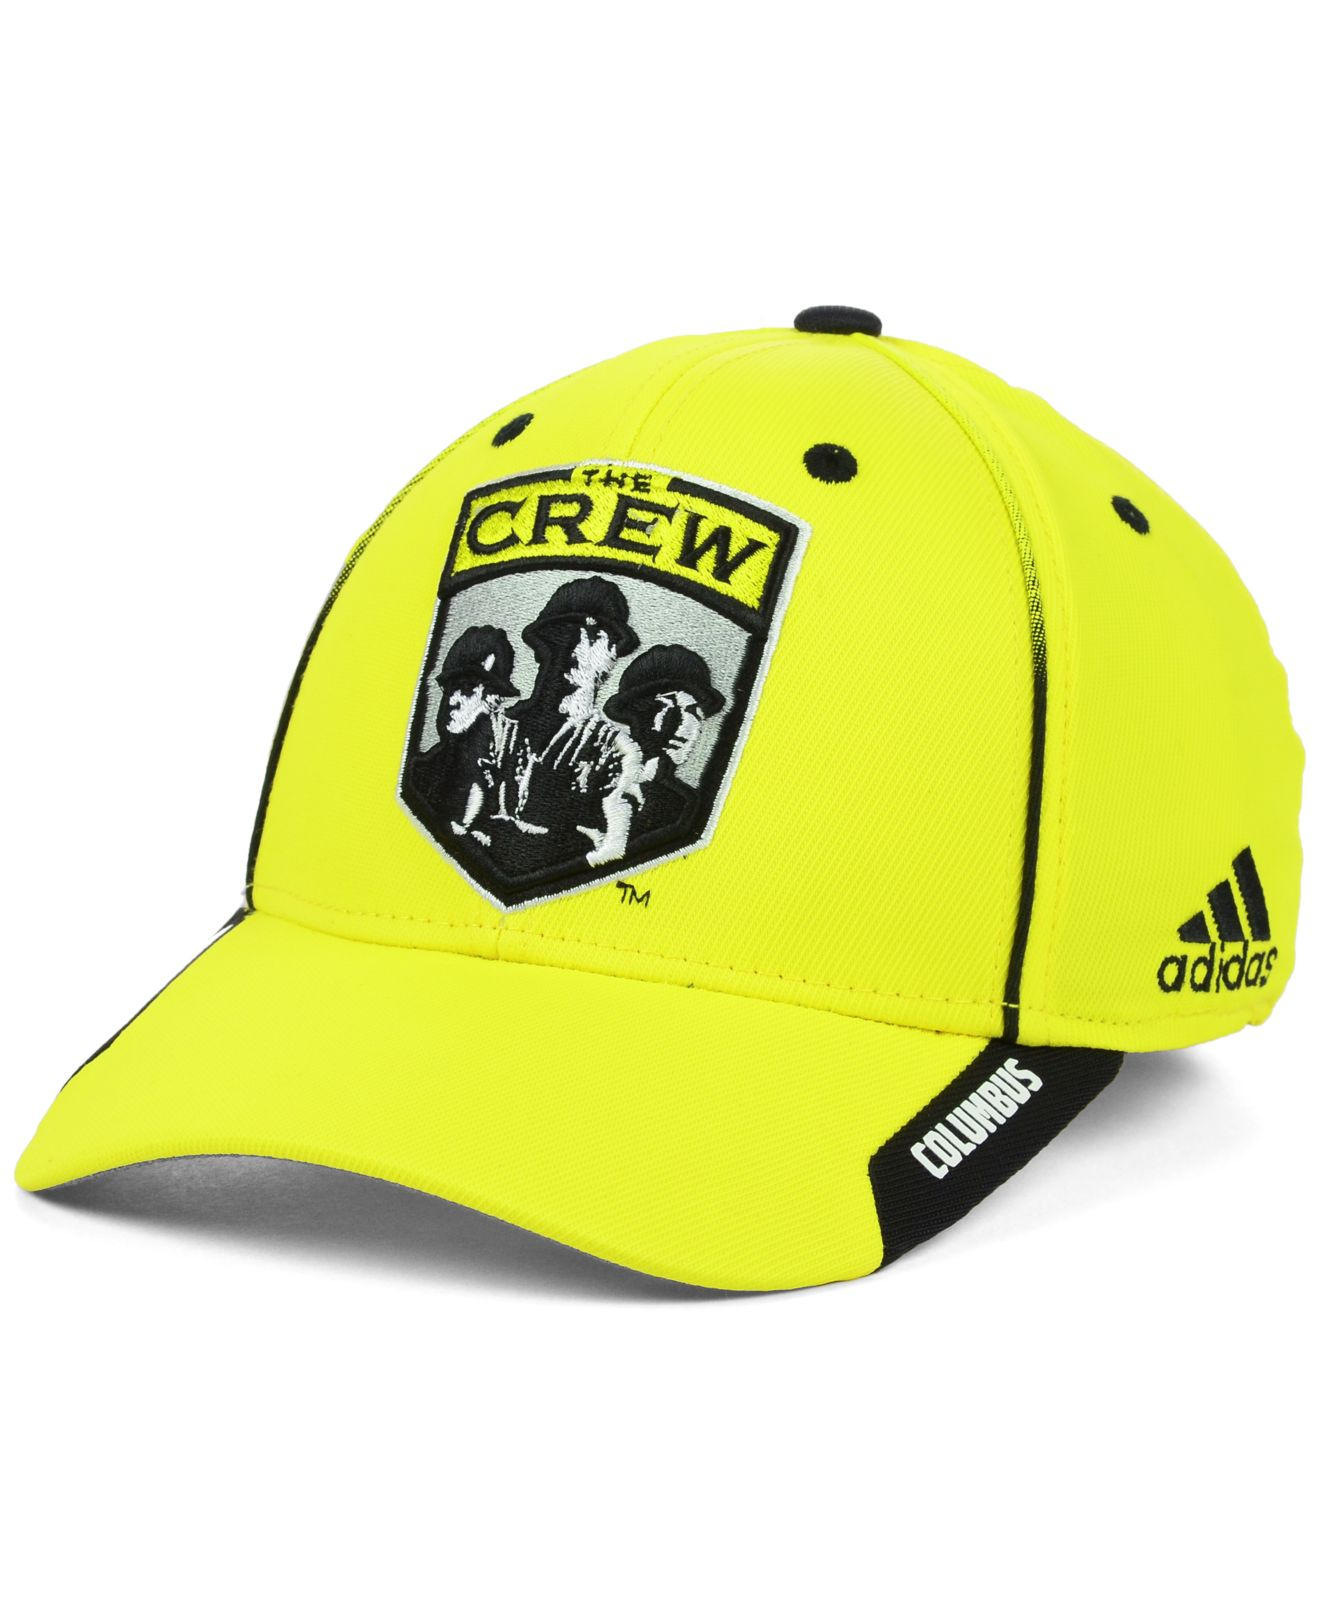 free shipping dd8a4 89d8a ... new arrivals lyst adidas columbus crew mls mid fielder cap in yellow  for men 42f65 79f78